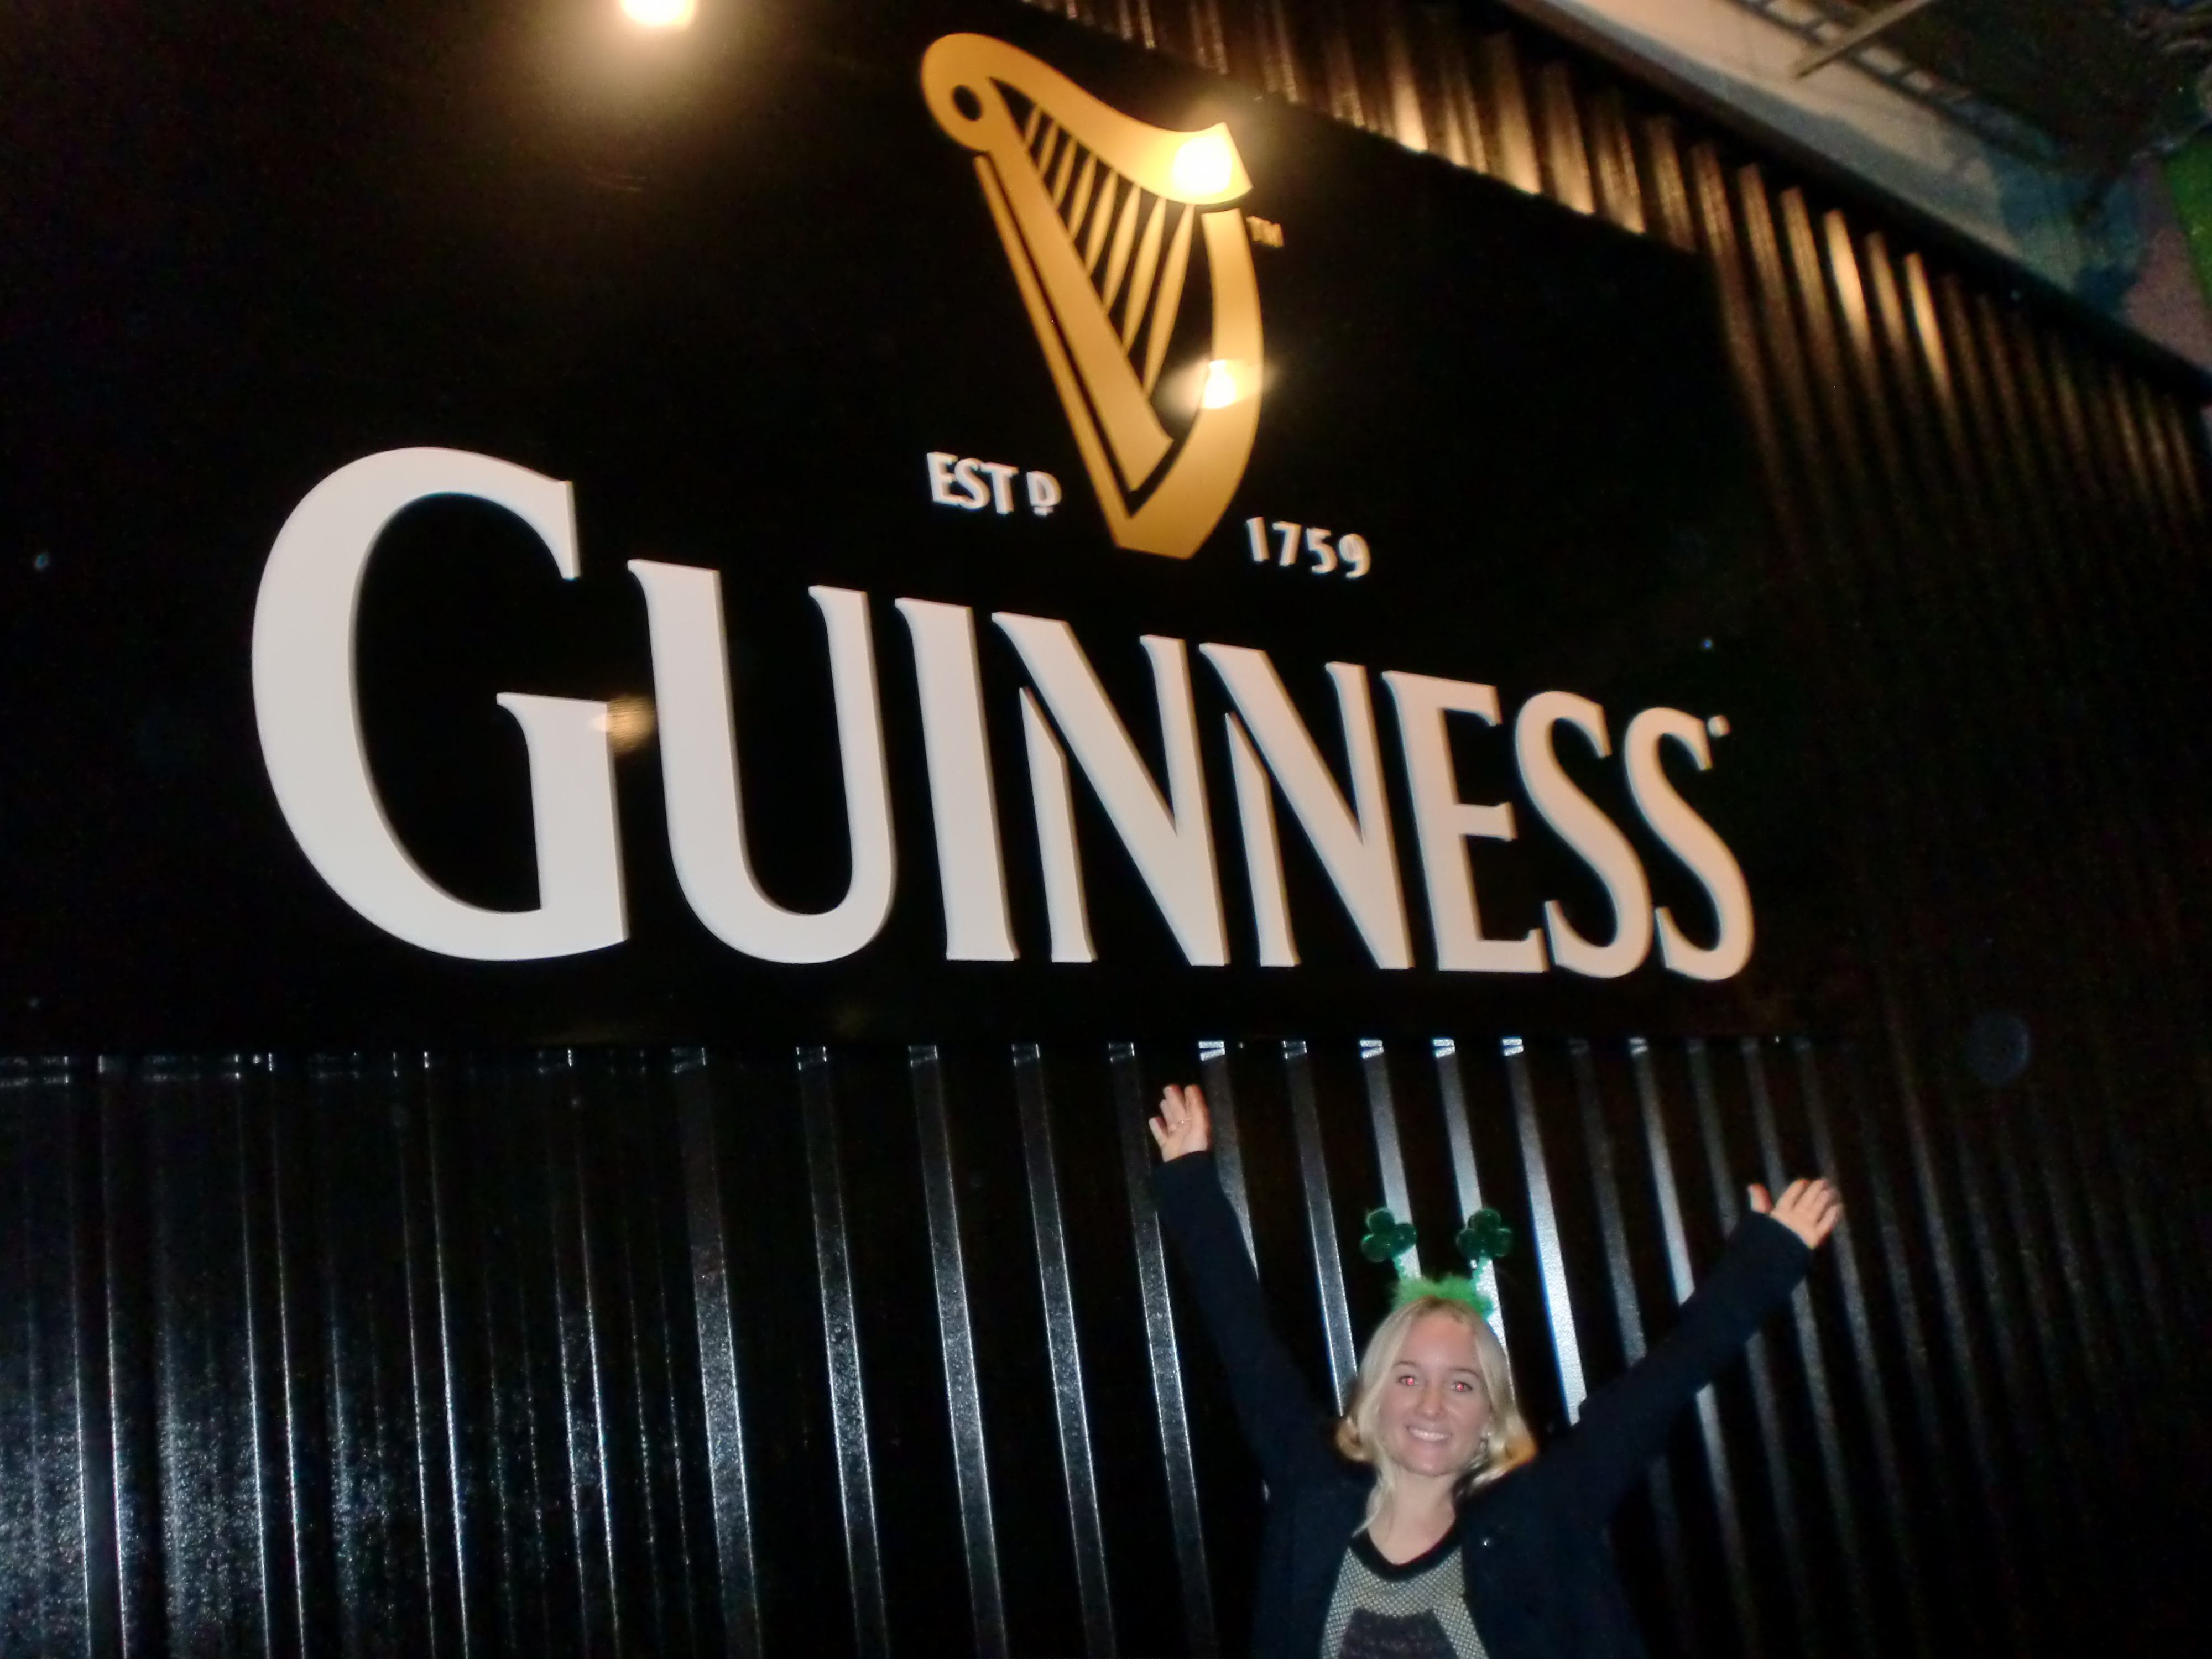 Me at the Guinness Storehouse